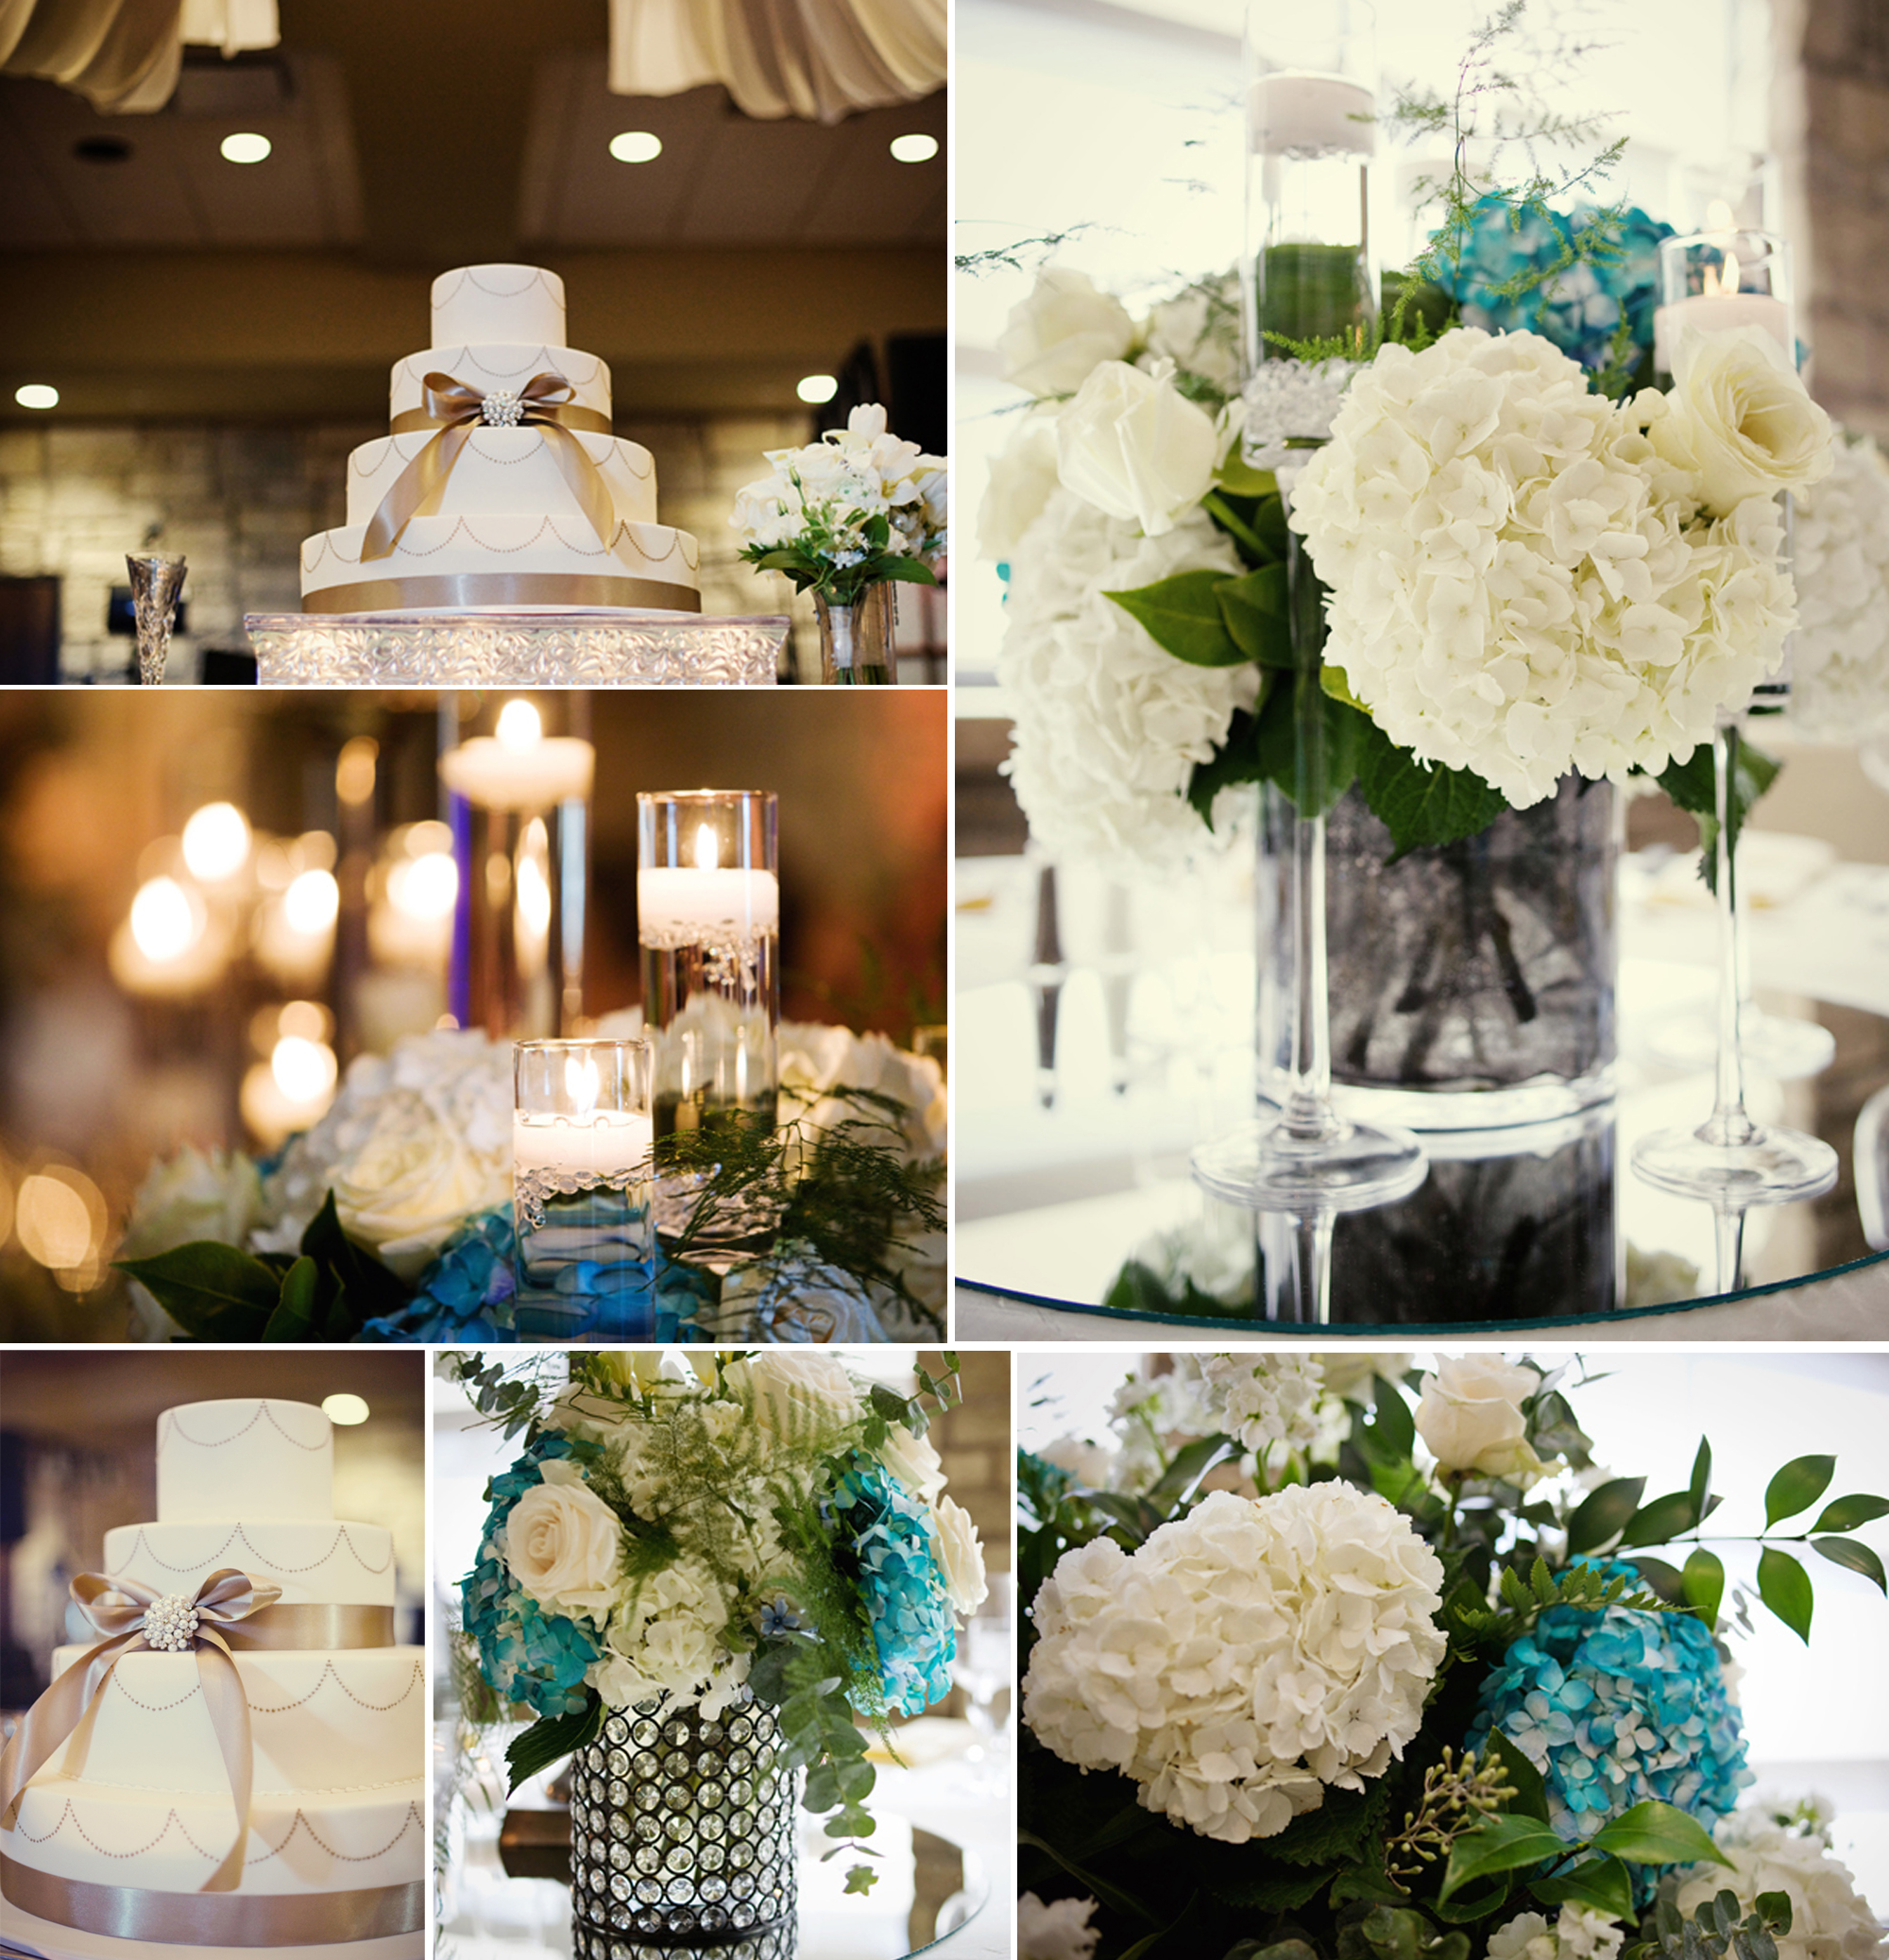 Elegant Wedding Centerpieces: Reception Centerpieces